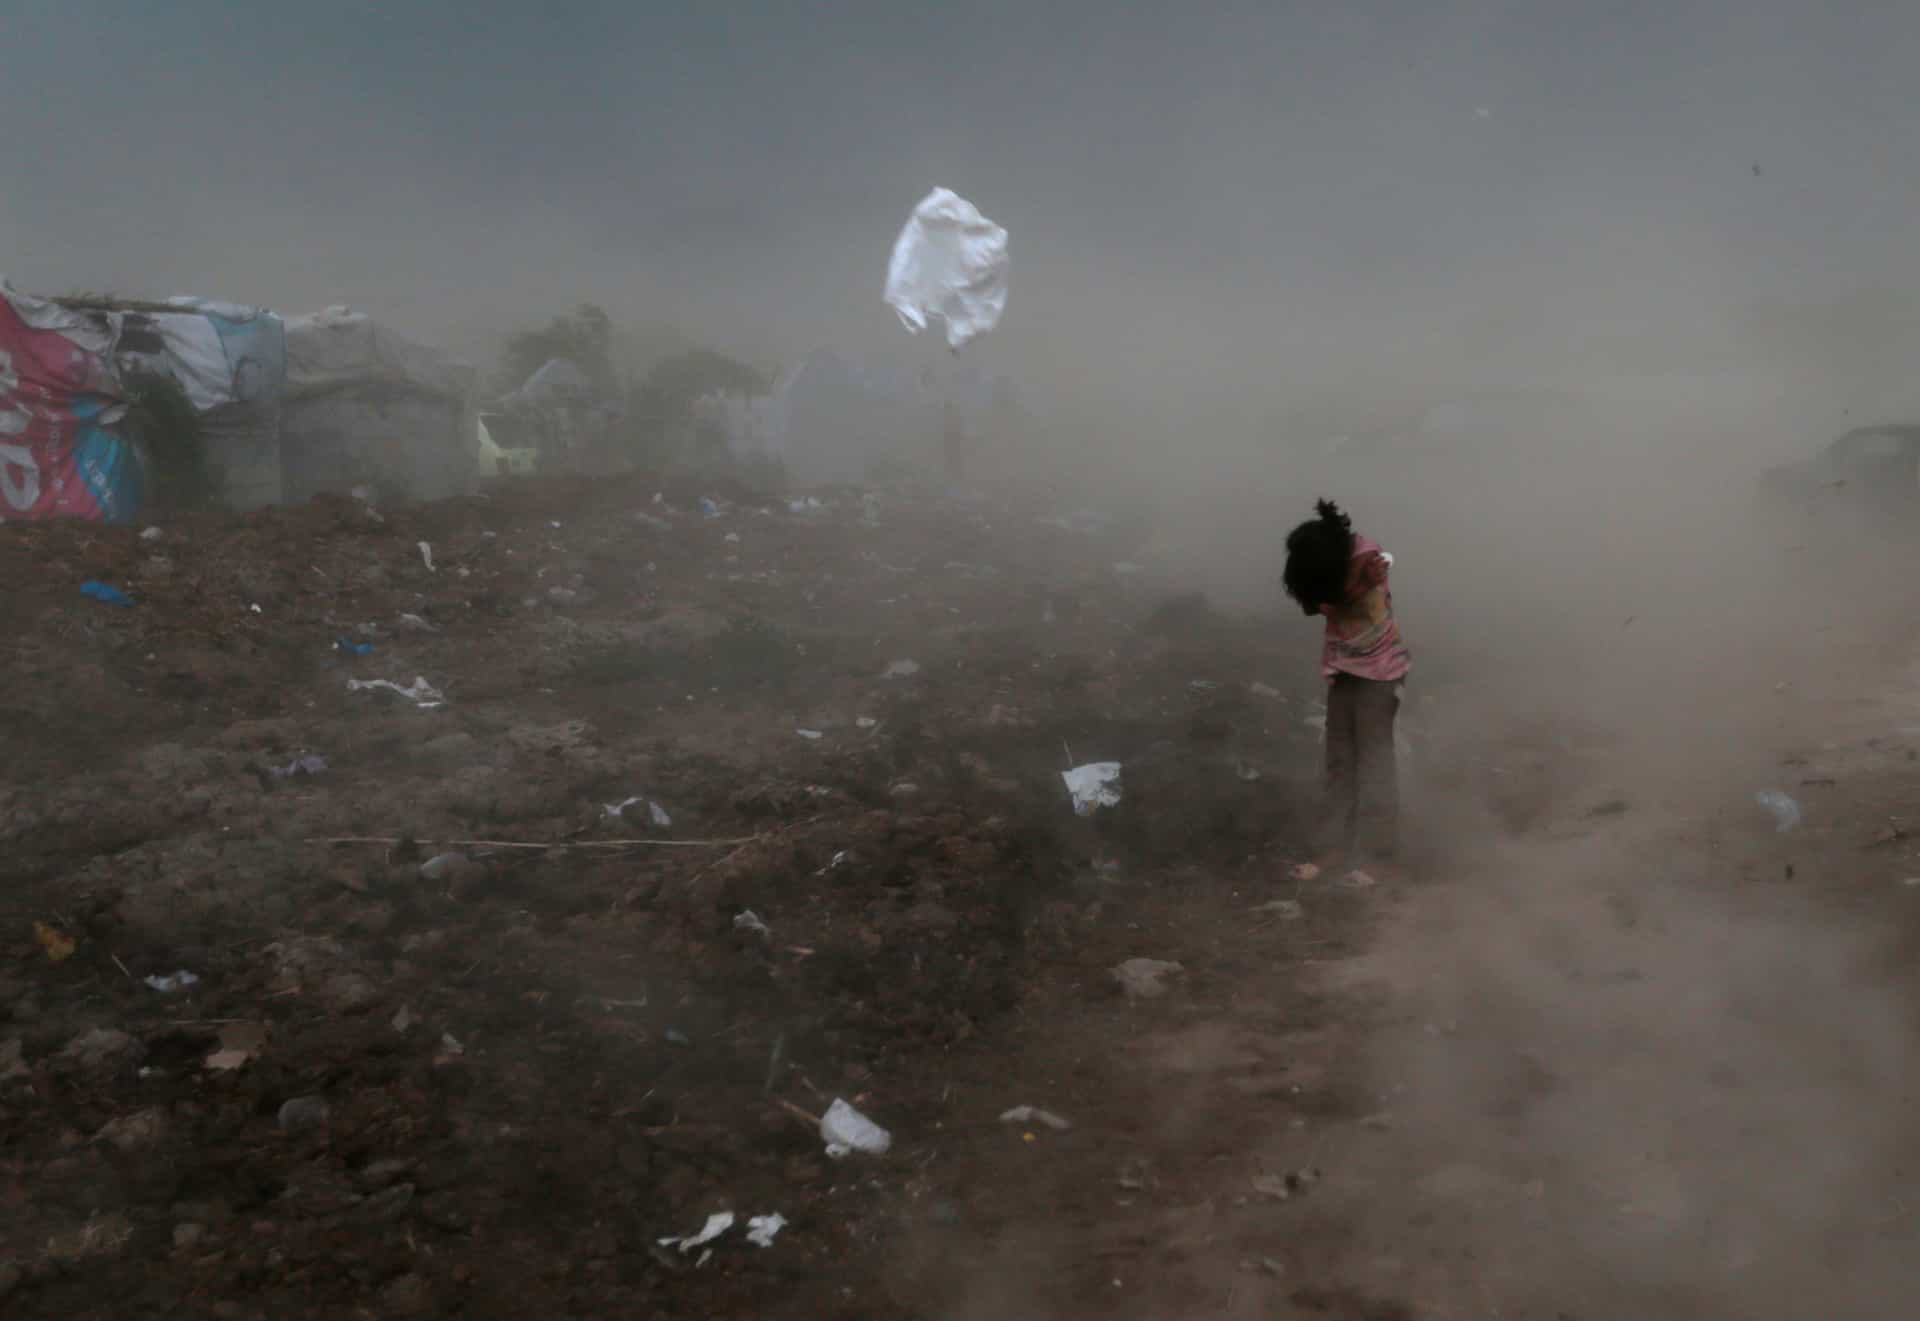 Shocking images of pollution around the world